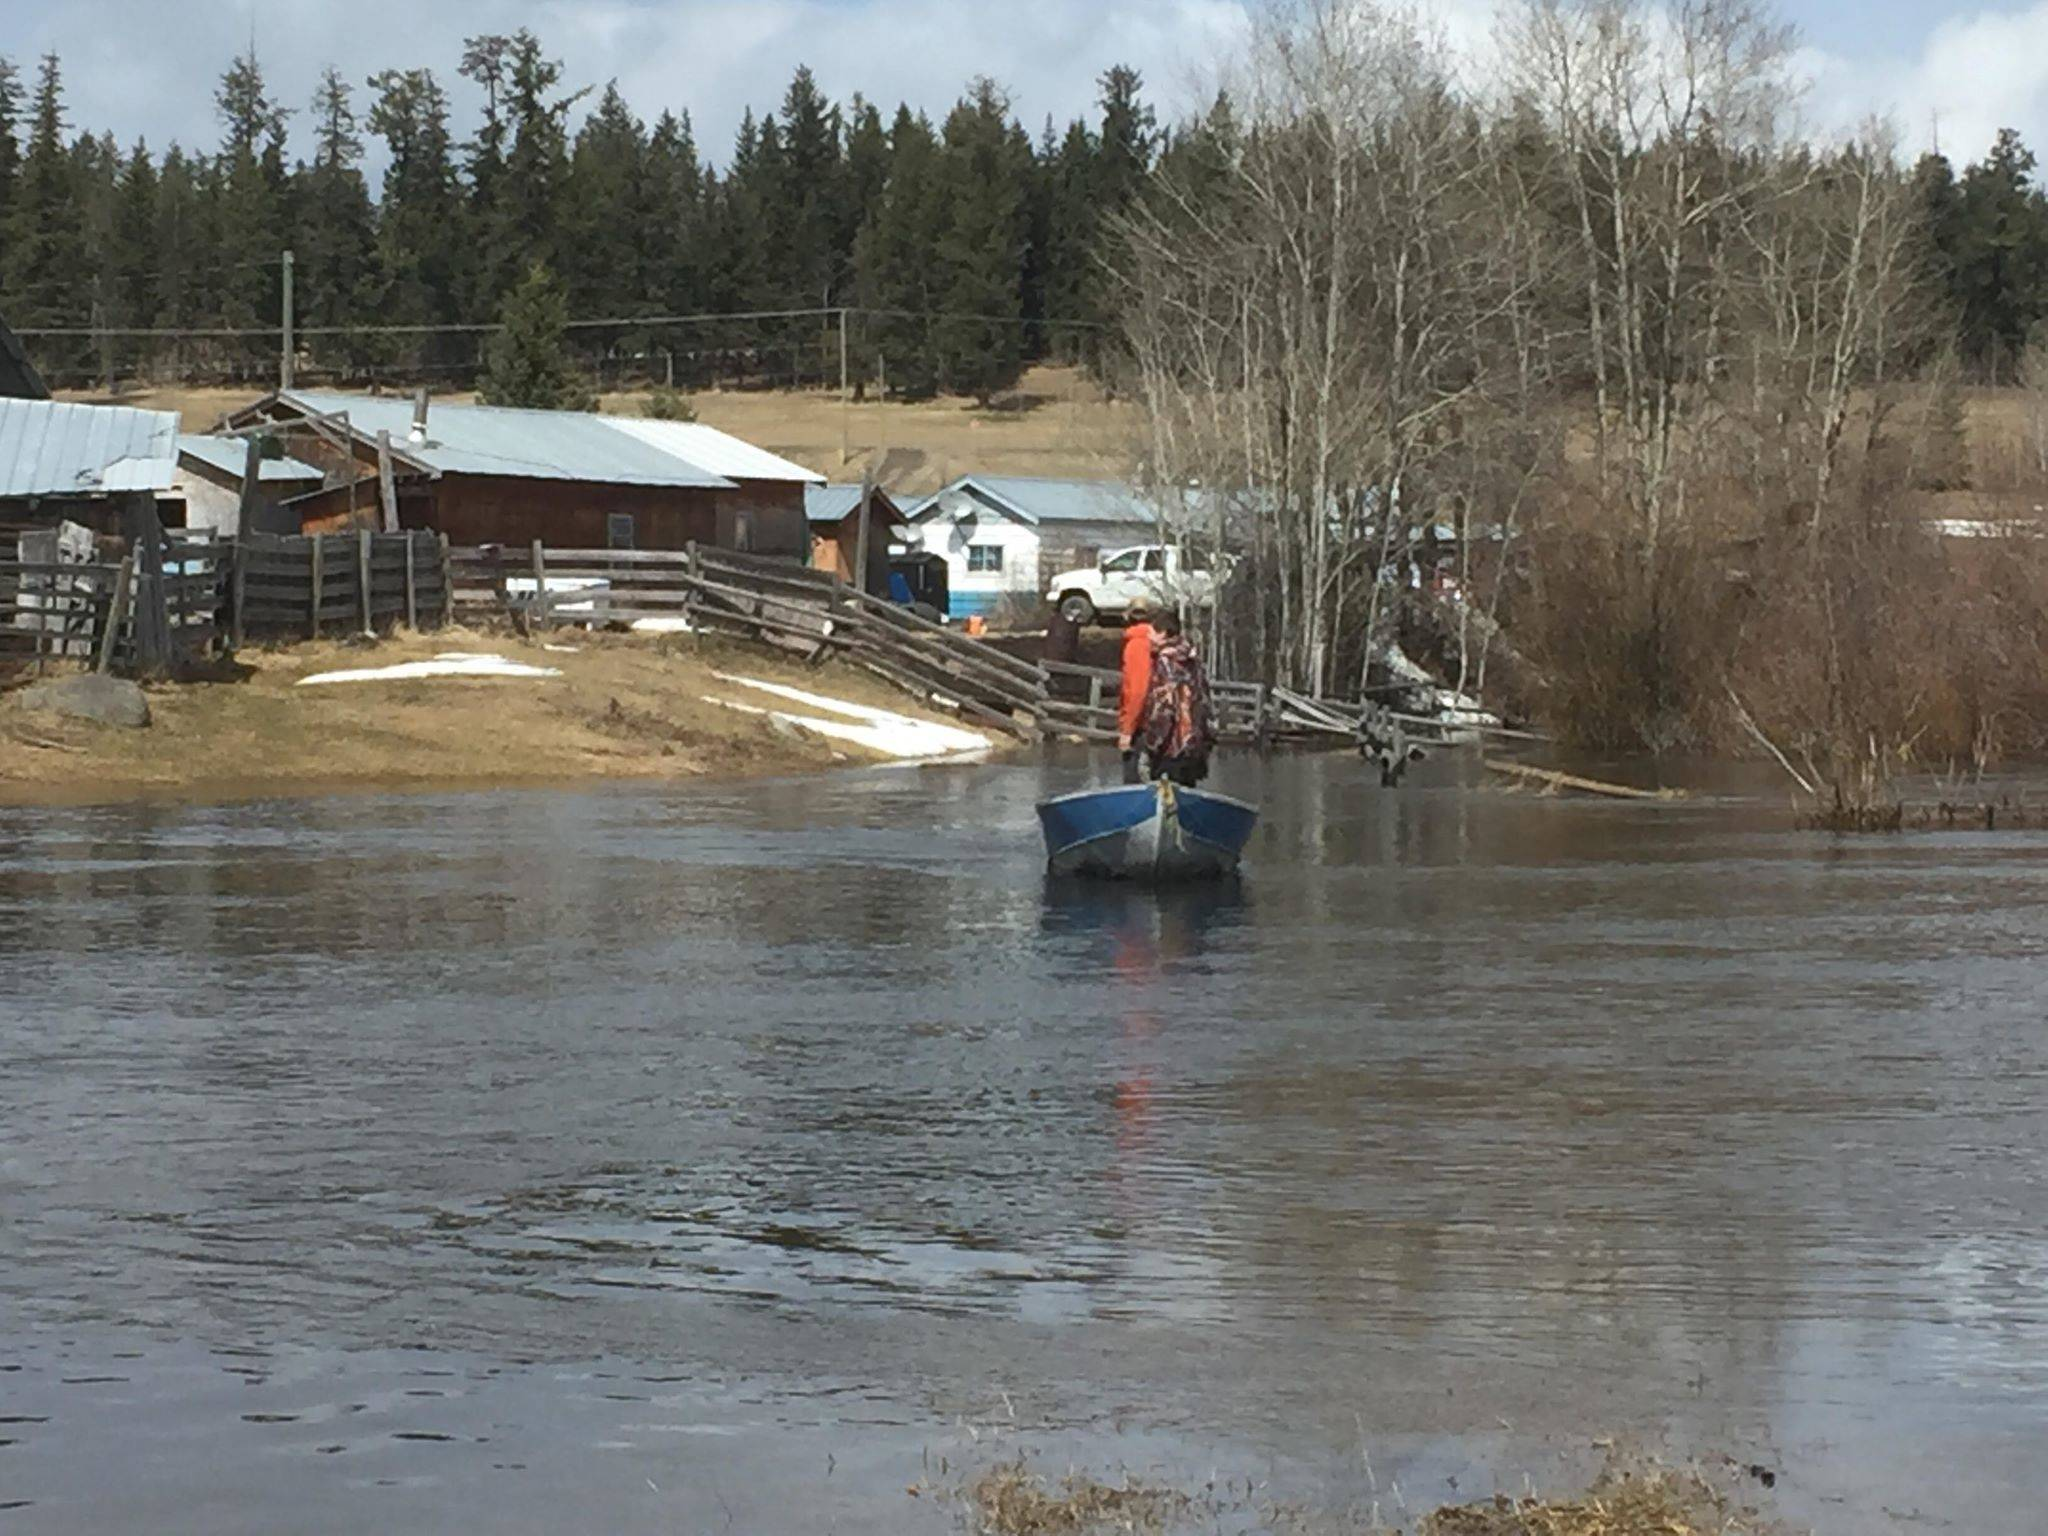 Rose Lake resident Charlotte Morrow has been using her boat to ferry local residents cut off by flooding. Here the boat is in a flooded field Friday. (Charlotte Morrow photo)